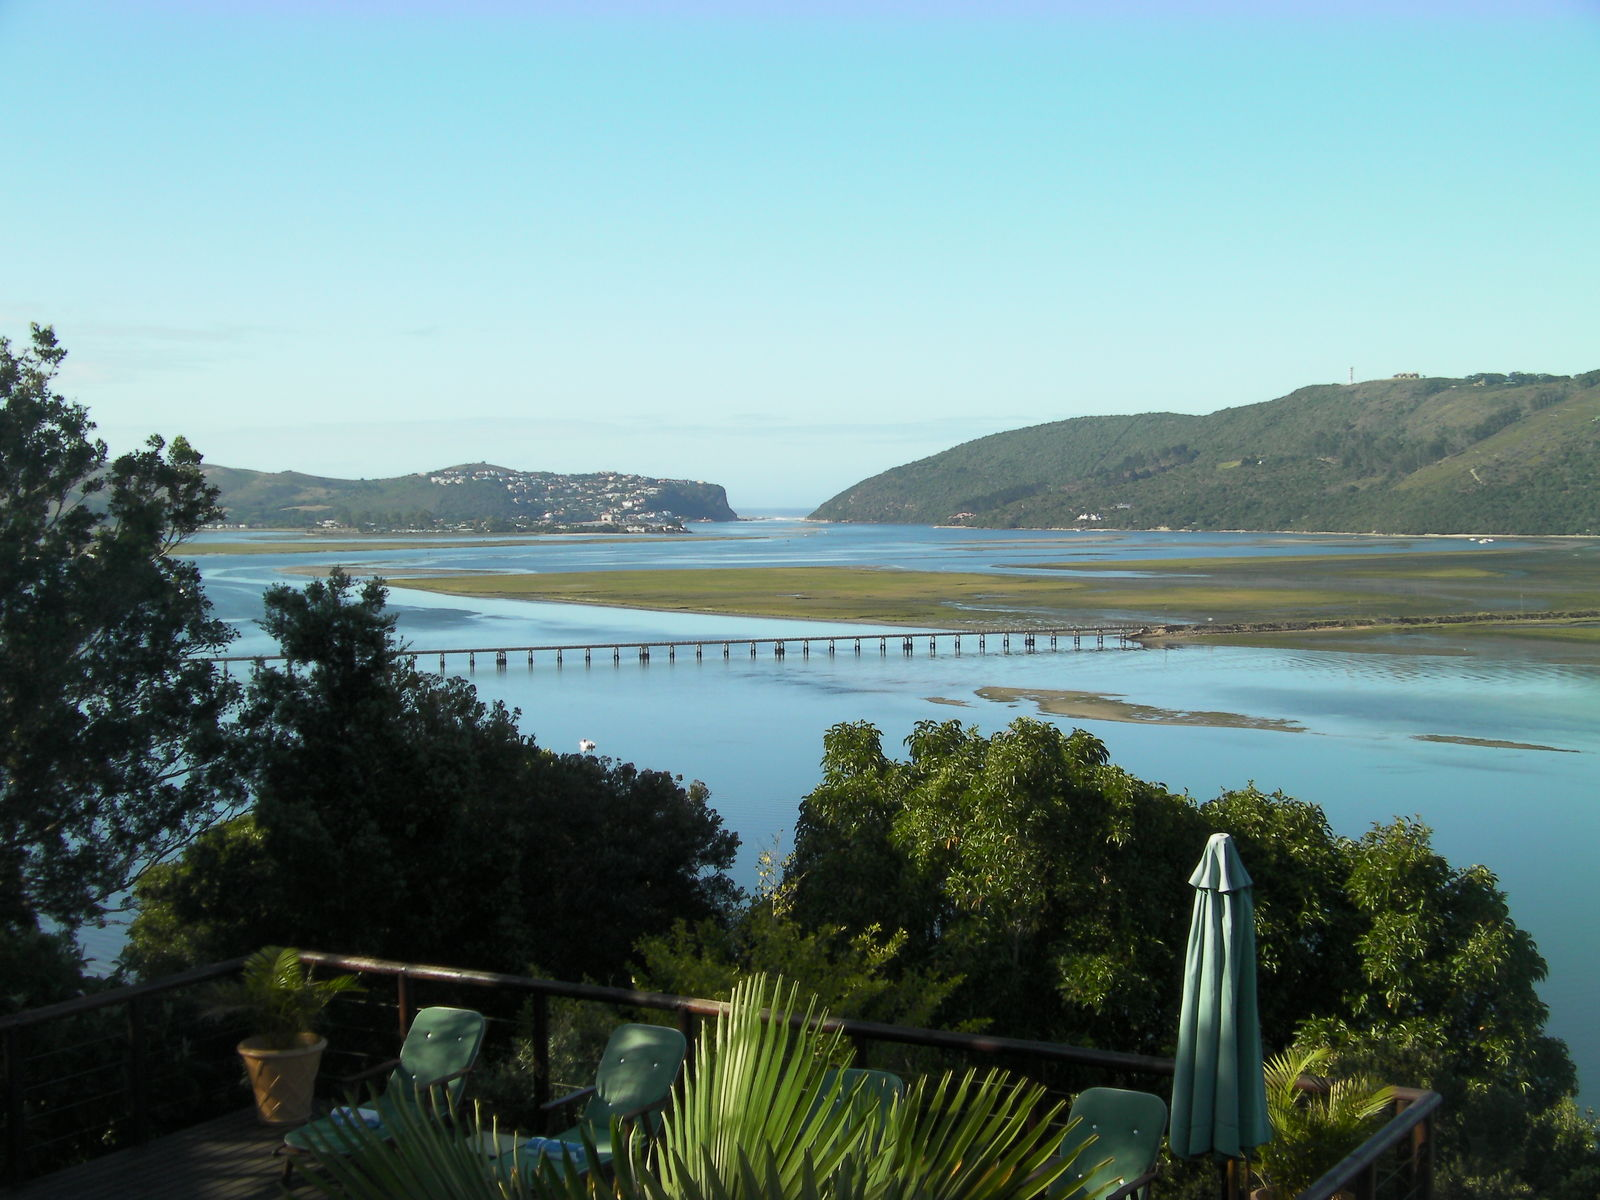 Olifanten in Addo Elephant National Park in Zuid-Afrika| AmbianceTravel